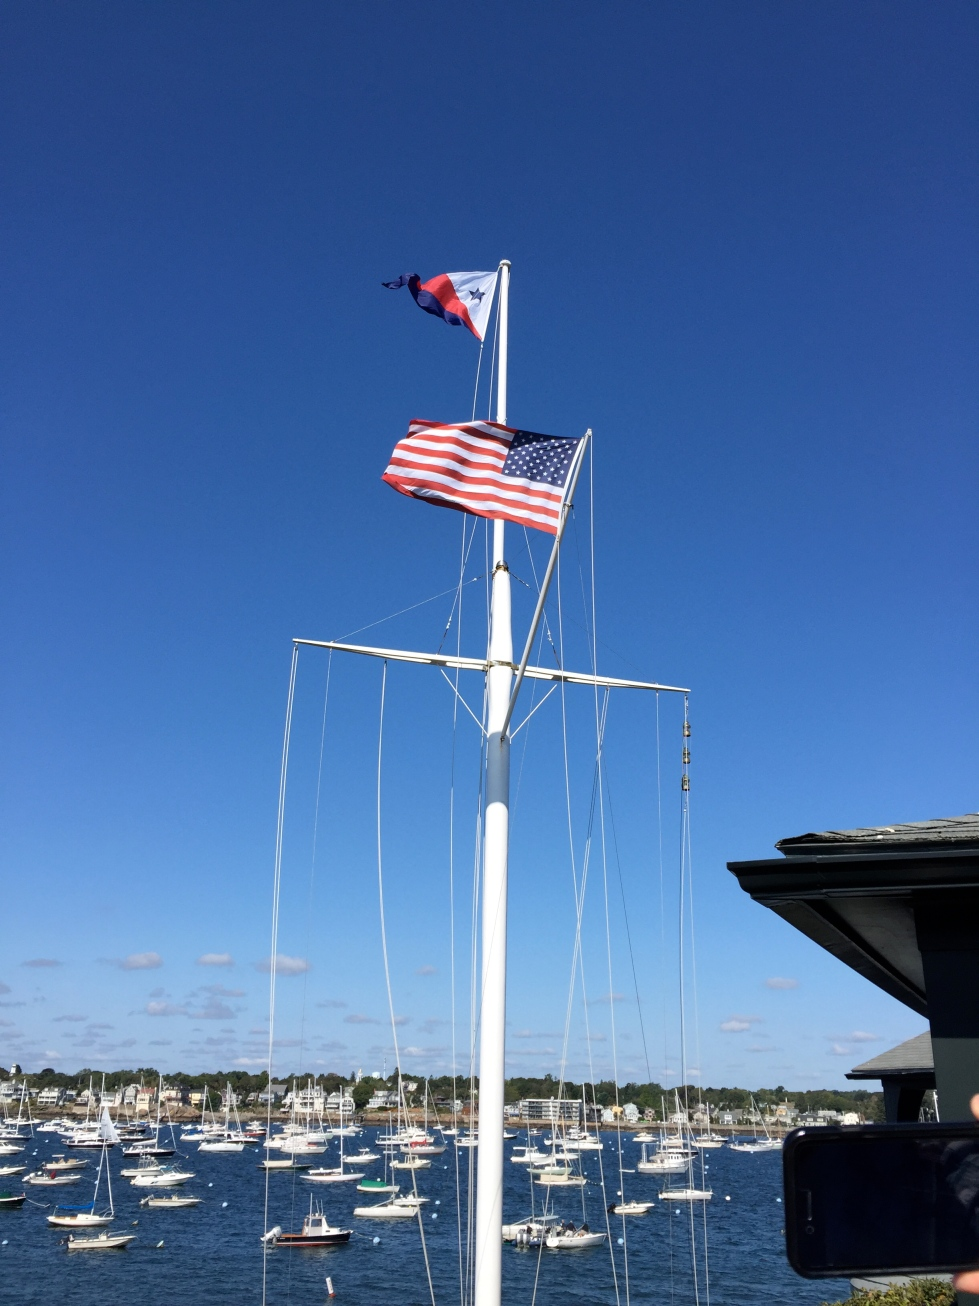 Yacht Club flags